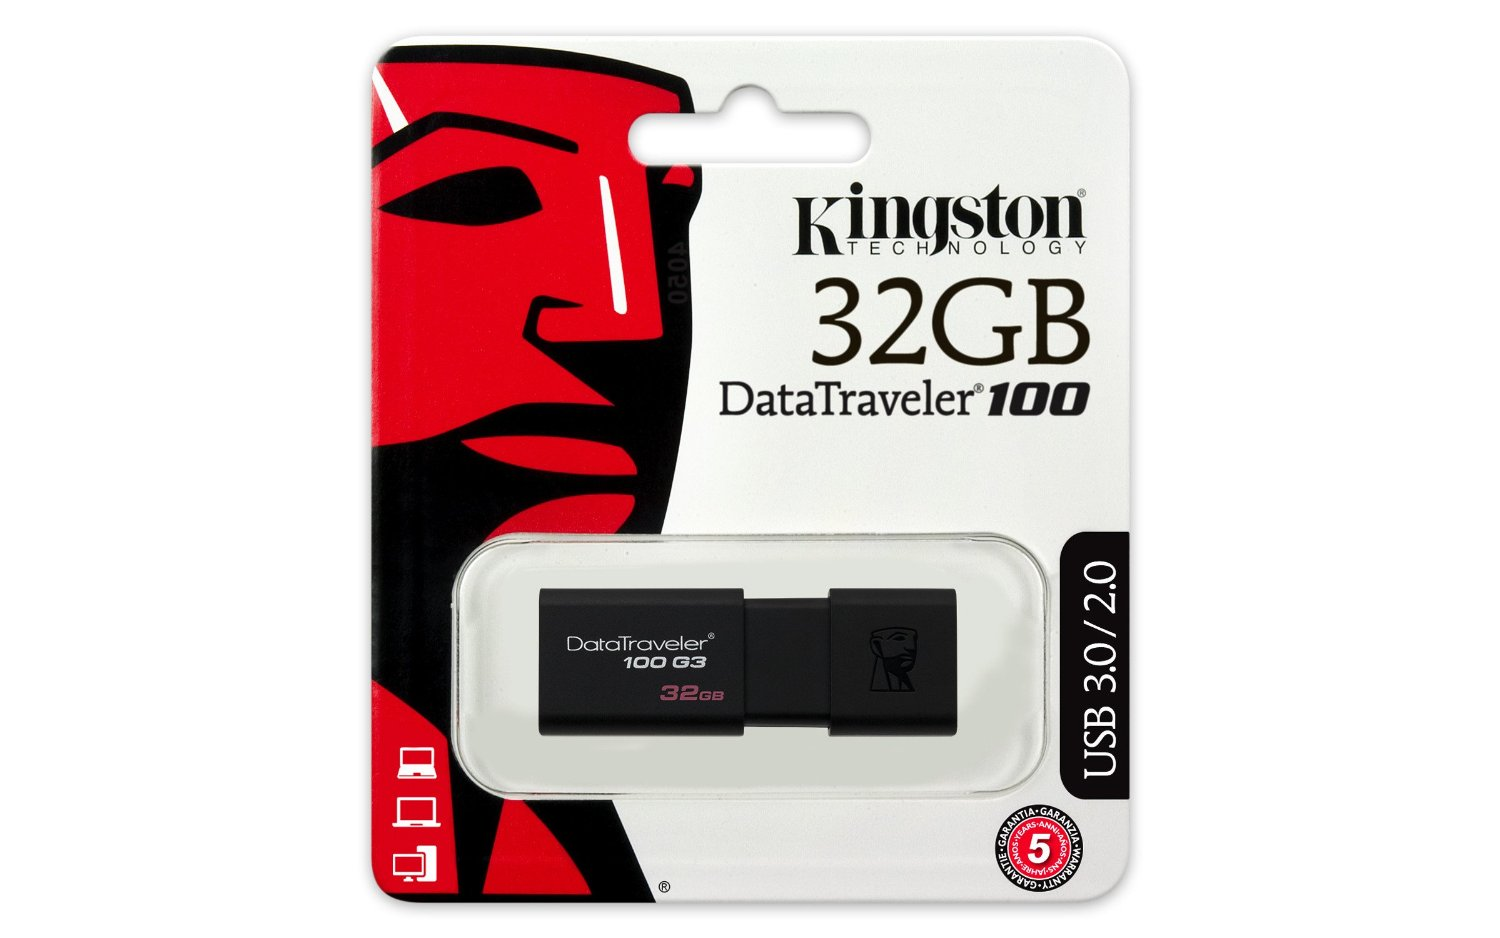 USB 32GB Kington DataTraveler 100 G3 (DT100G3/32)